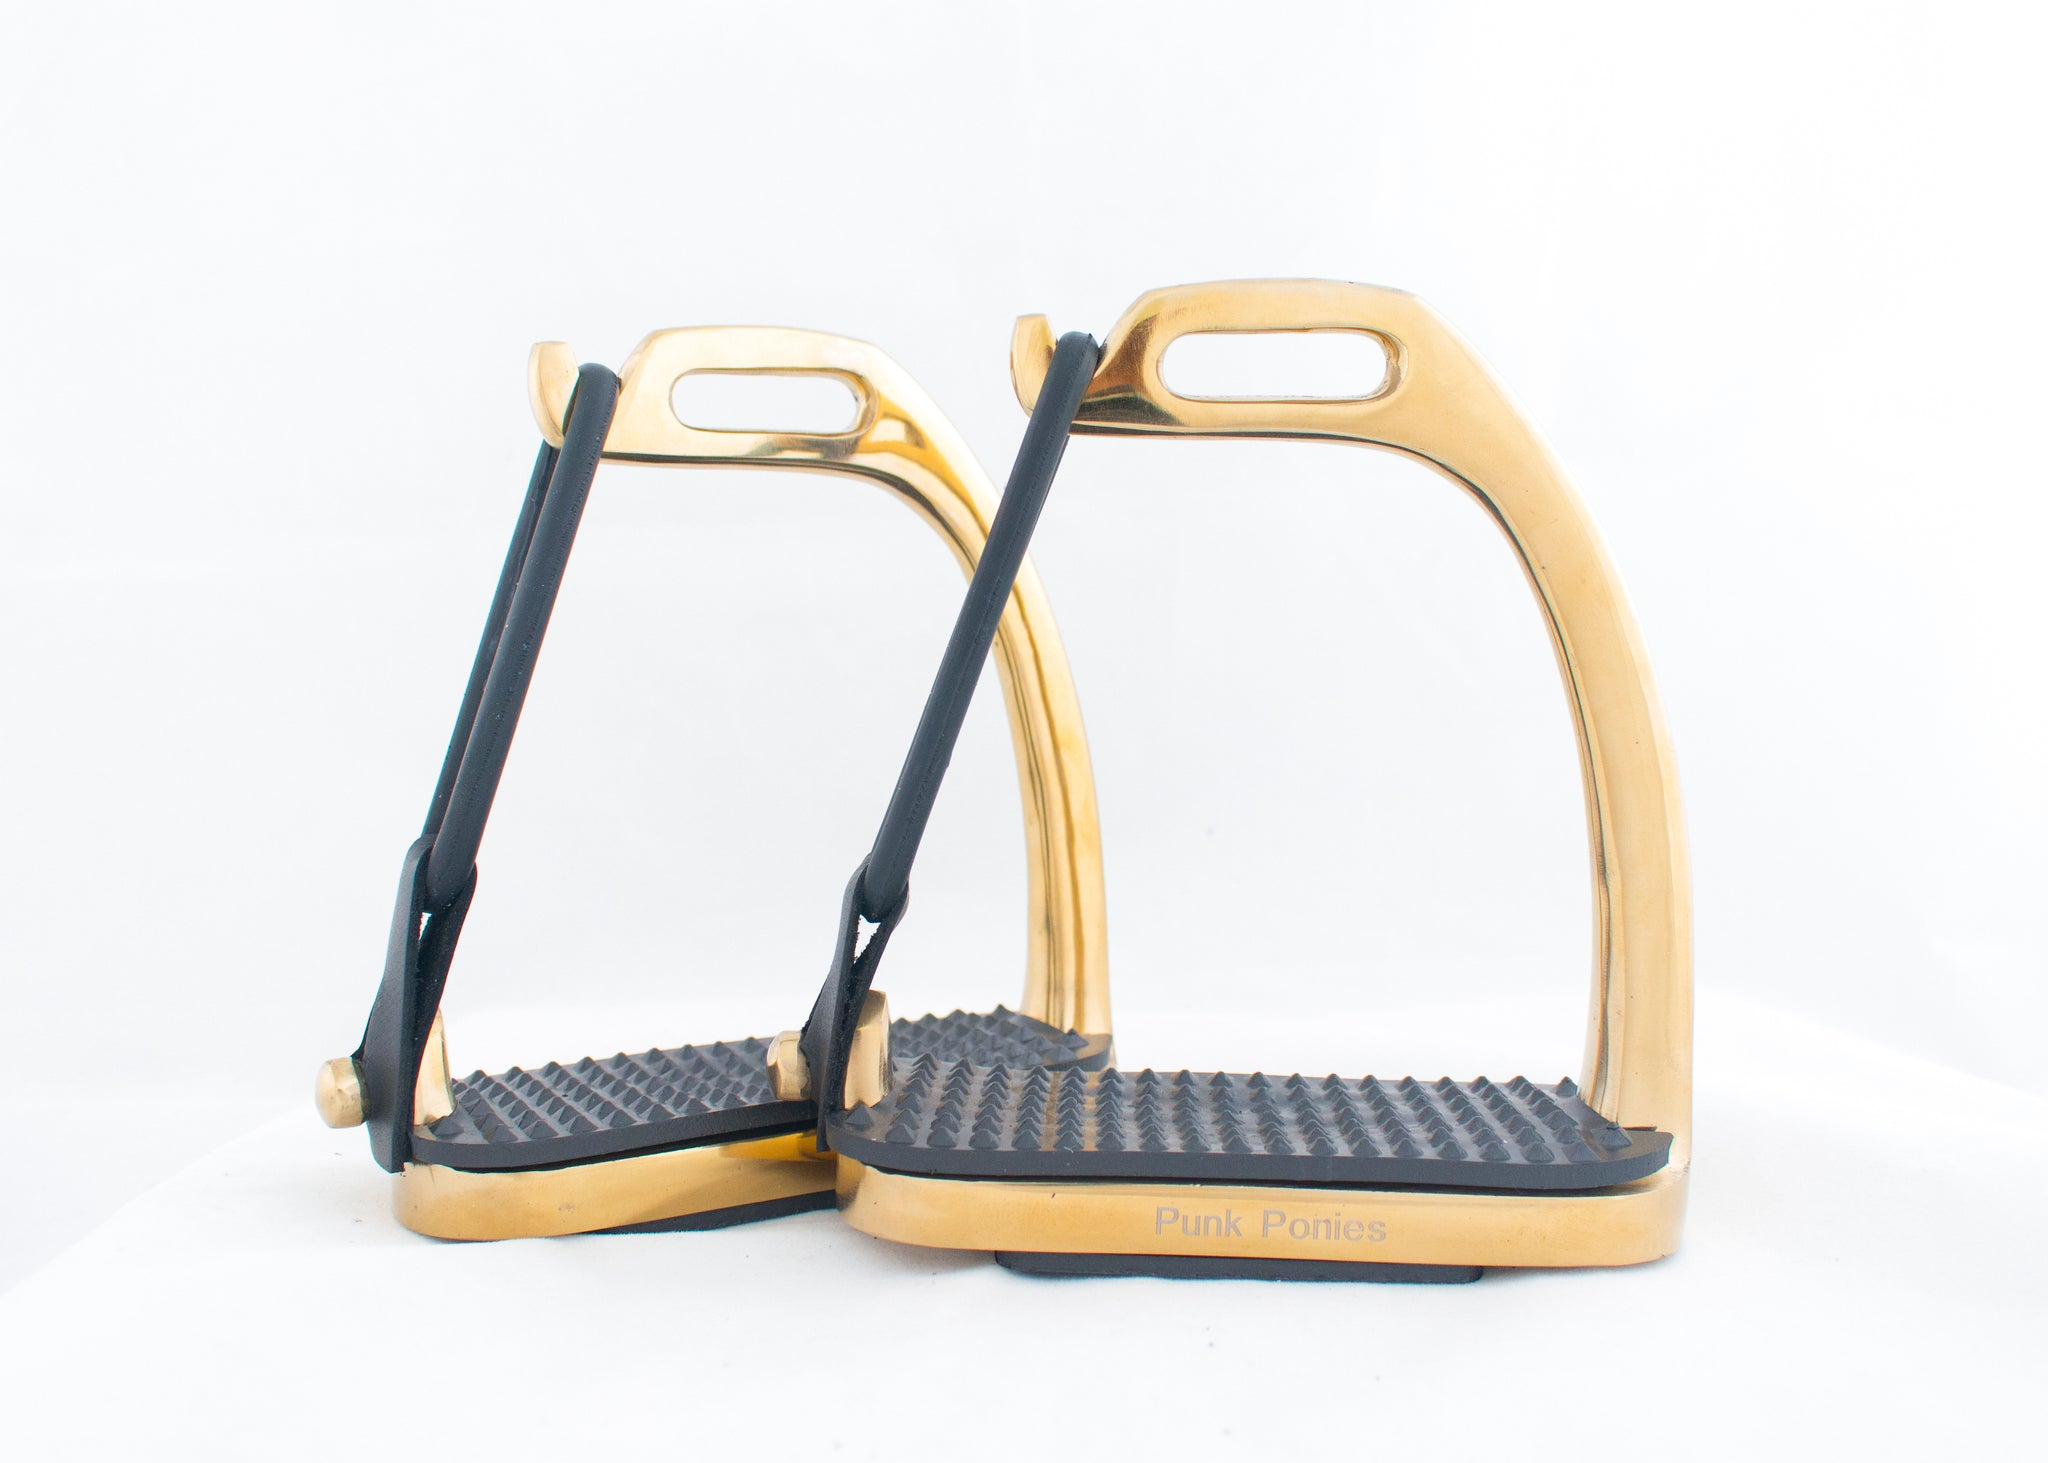 Electro-plated Peacock Stirrups